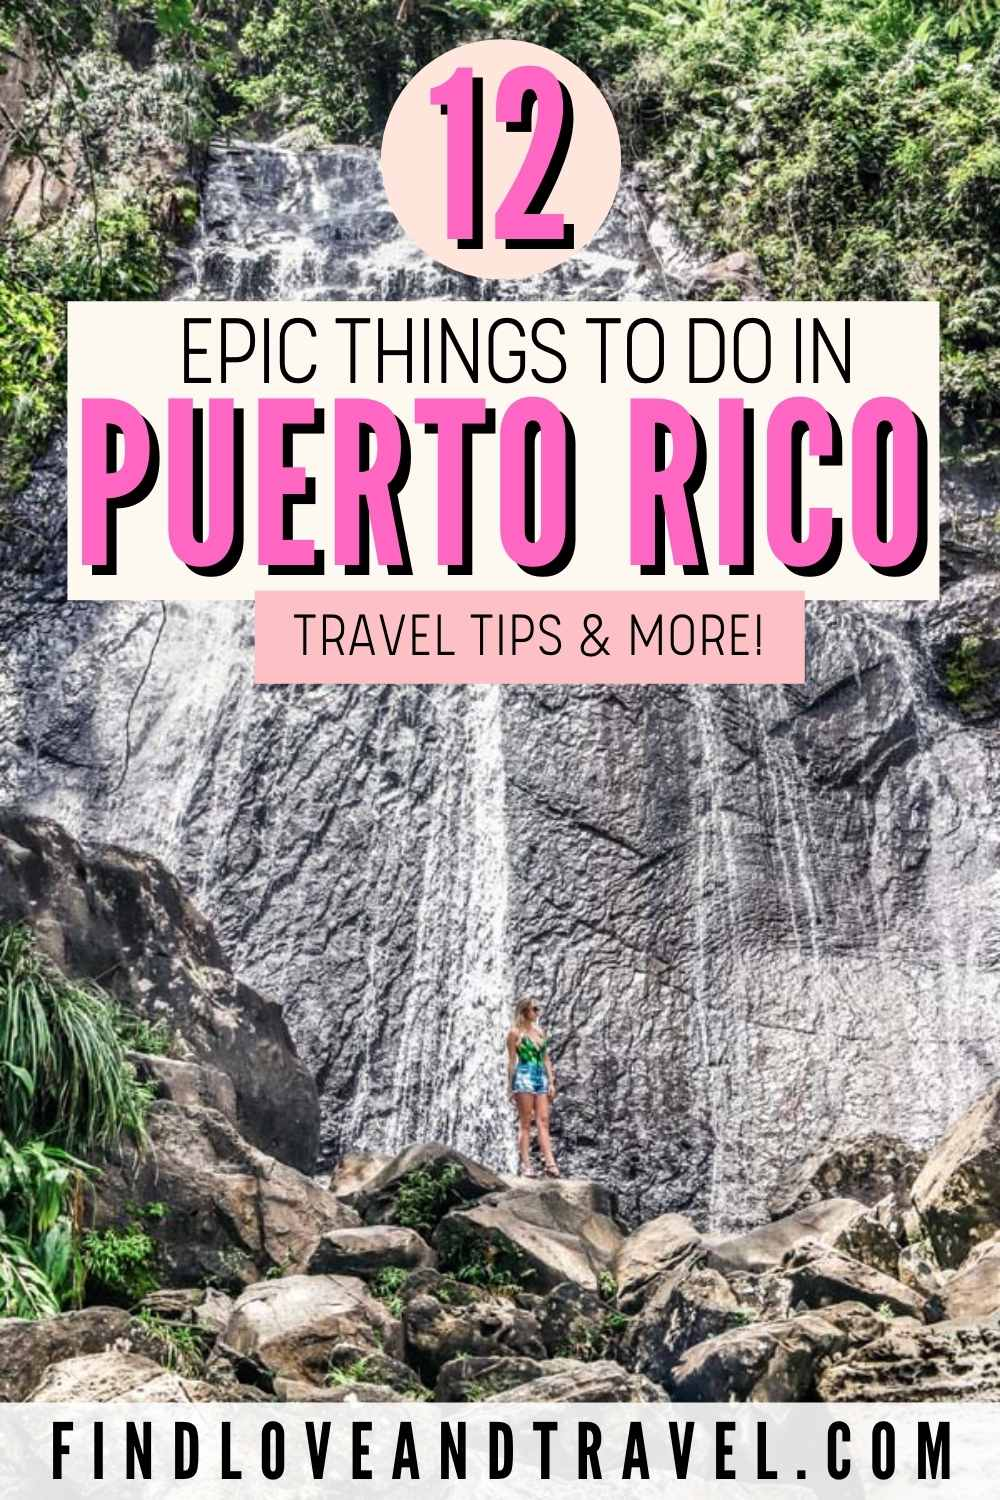 Best things to do in Puerto Rico travel guide